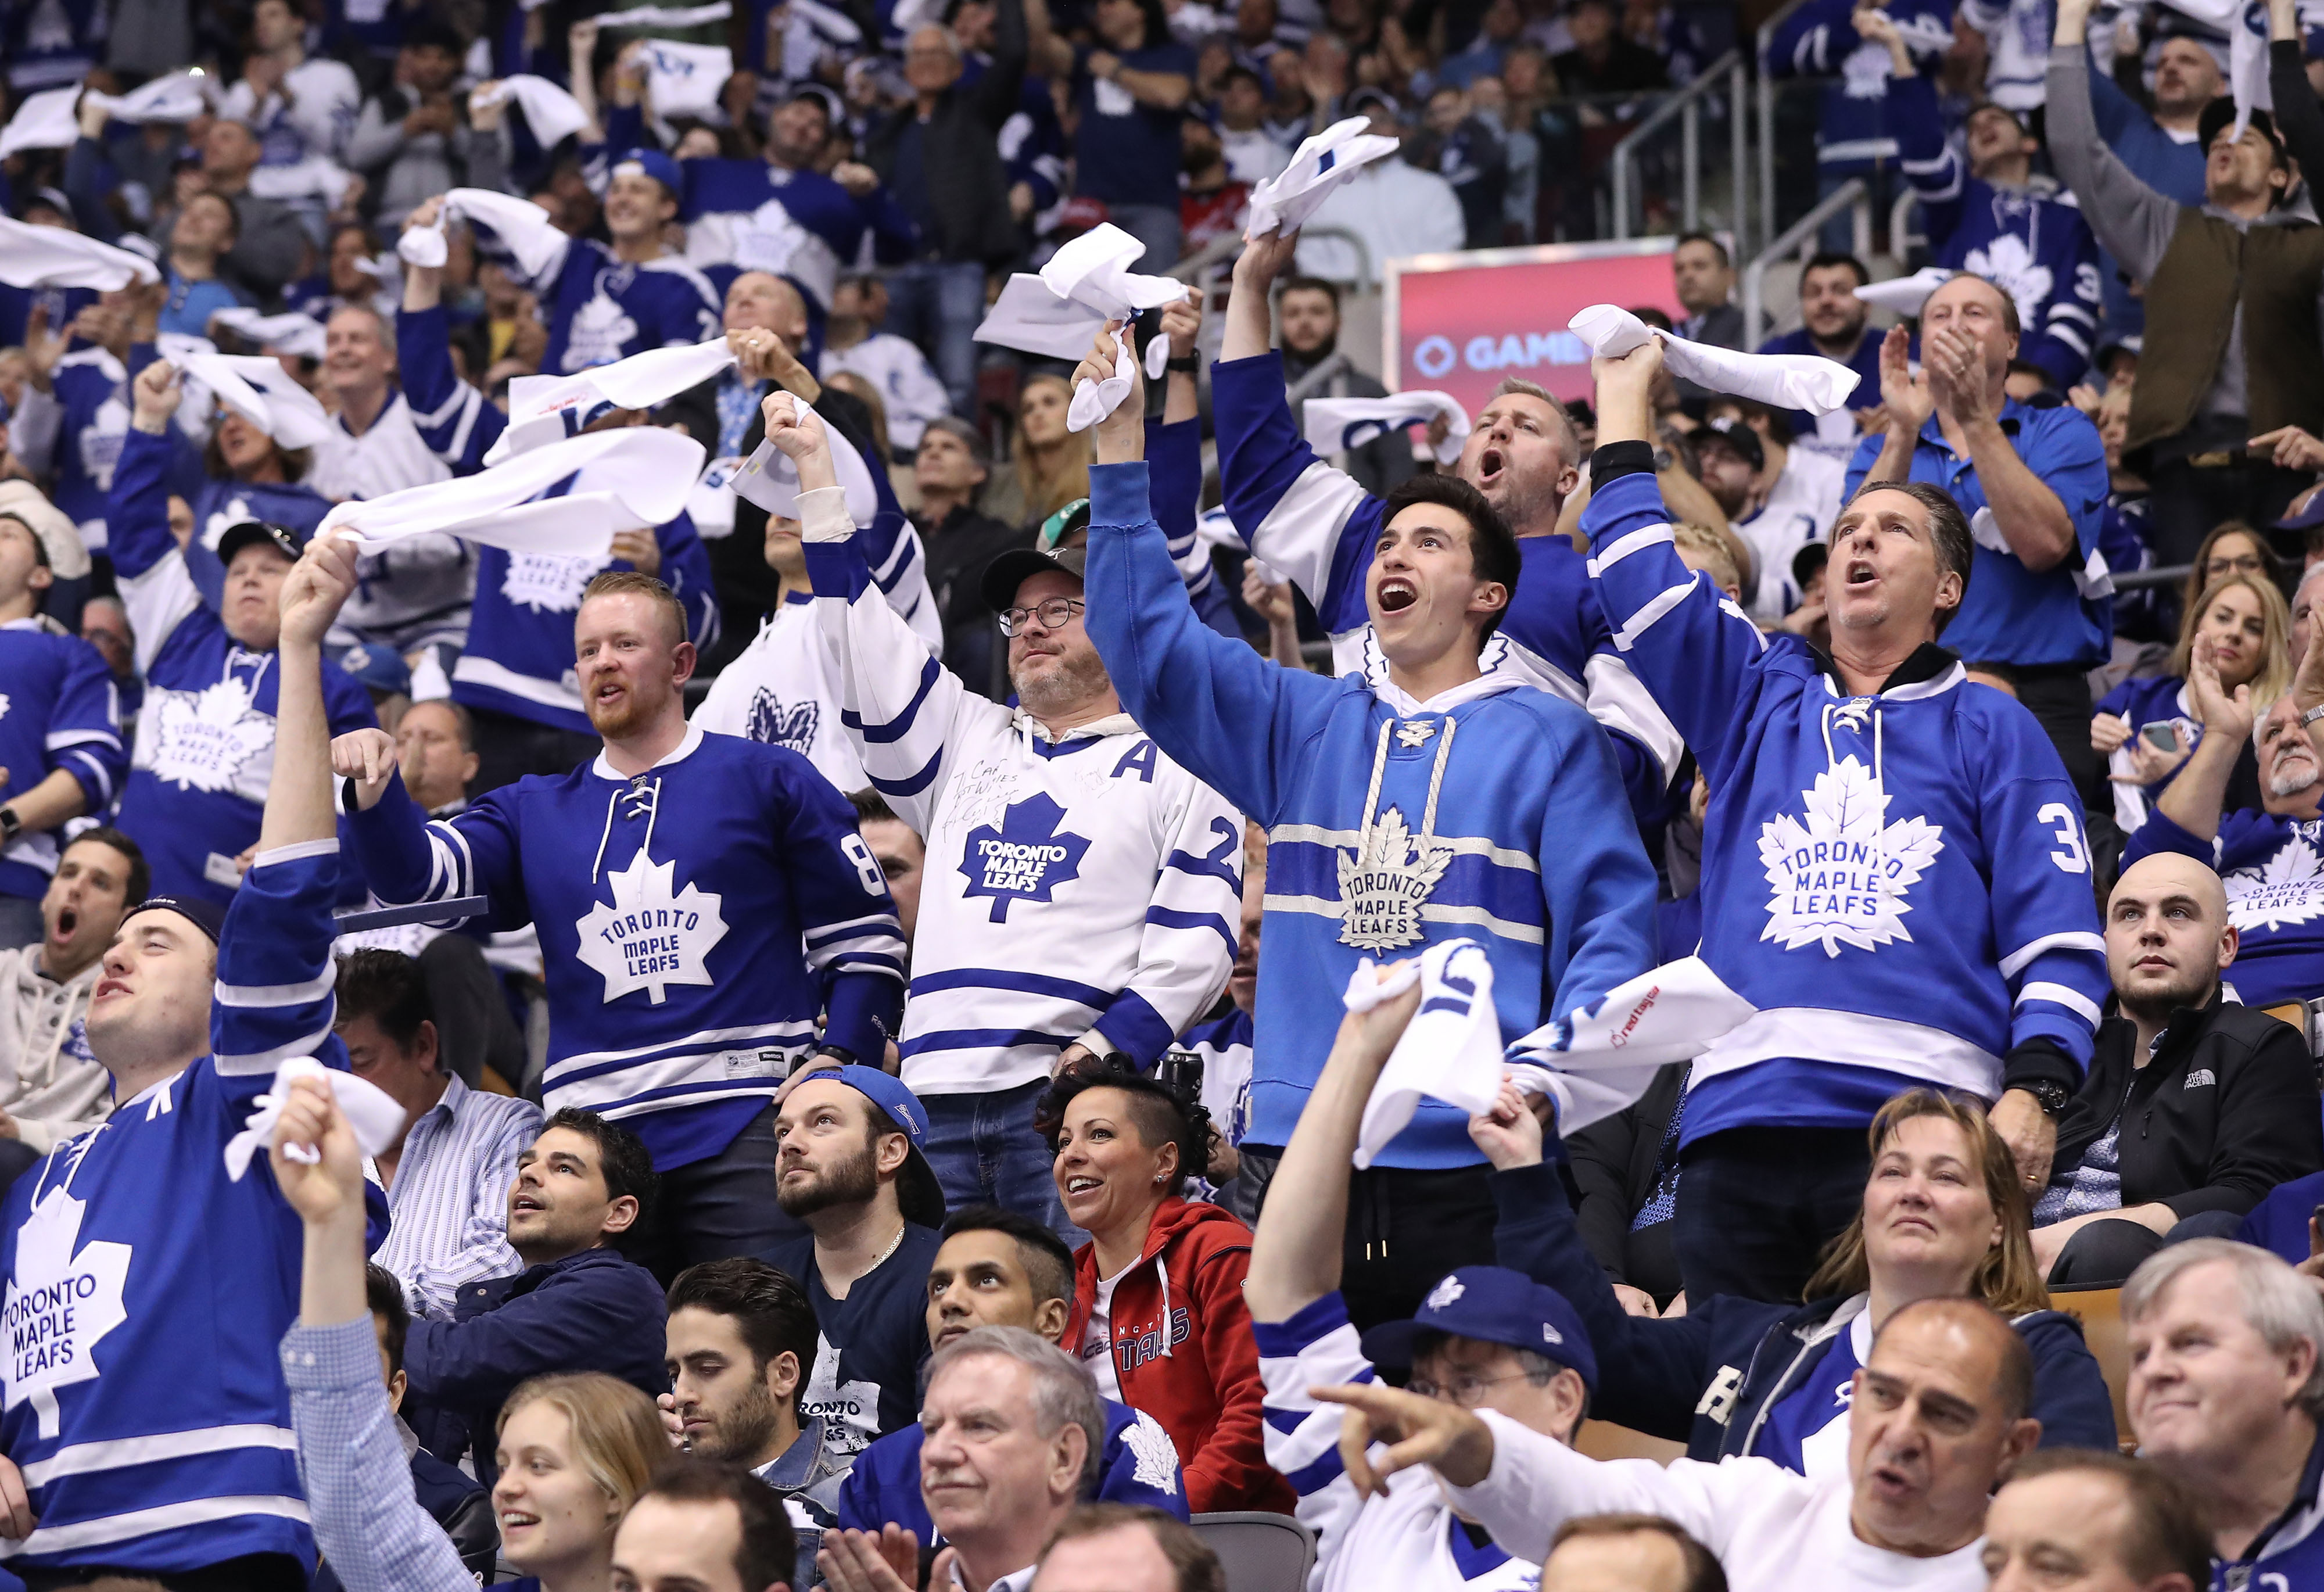 10028521-nhl-stanley-cup-playoffs-washington-capitals-at-toronto-maple-leafs-1